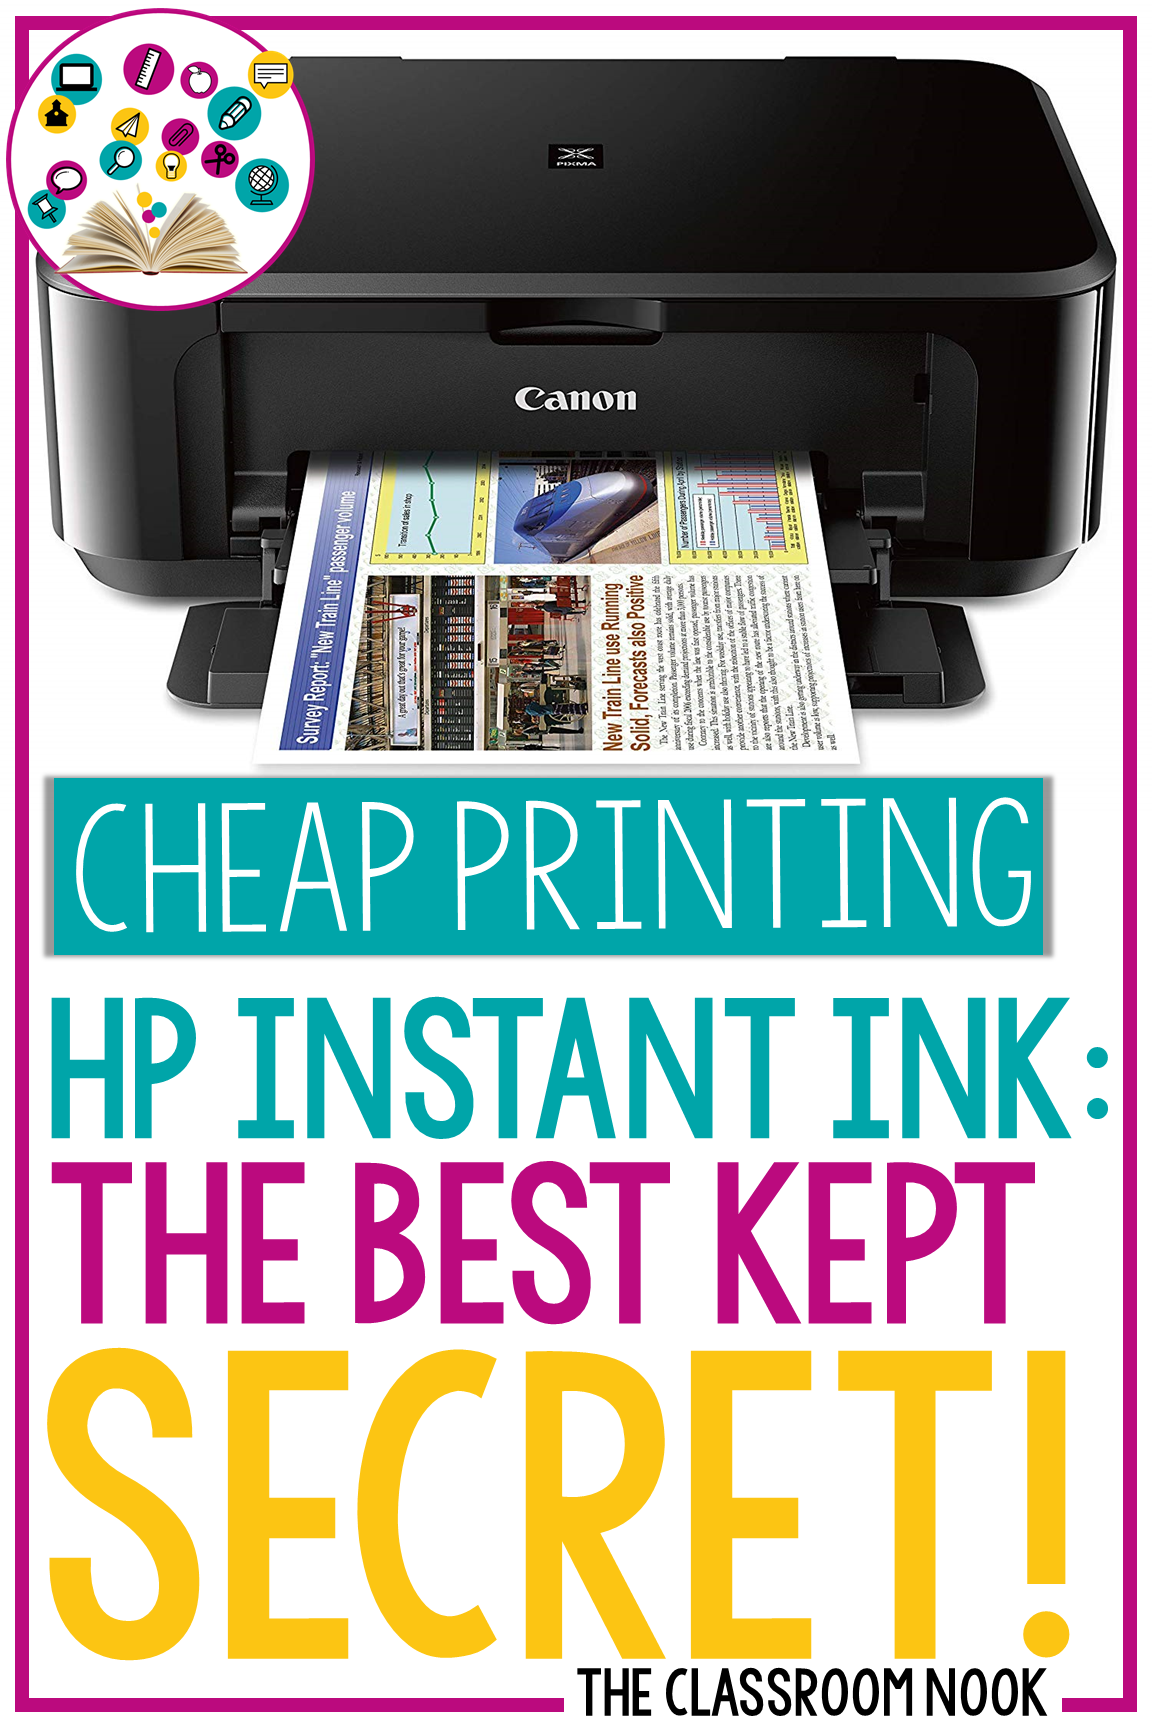 Printing resources in color is a great way to make your classroom materials stand out. However, printing in color can be expensive - unless you use the HP Instant Ink program that allows you to print page after page for less! #classroomresources #hpinstantink